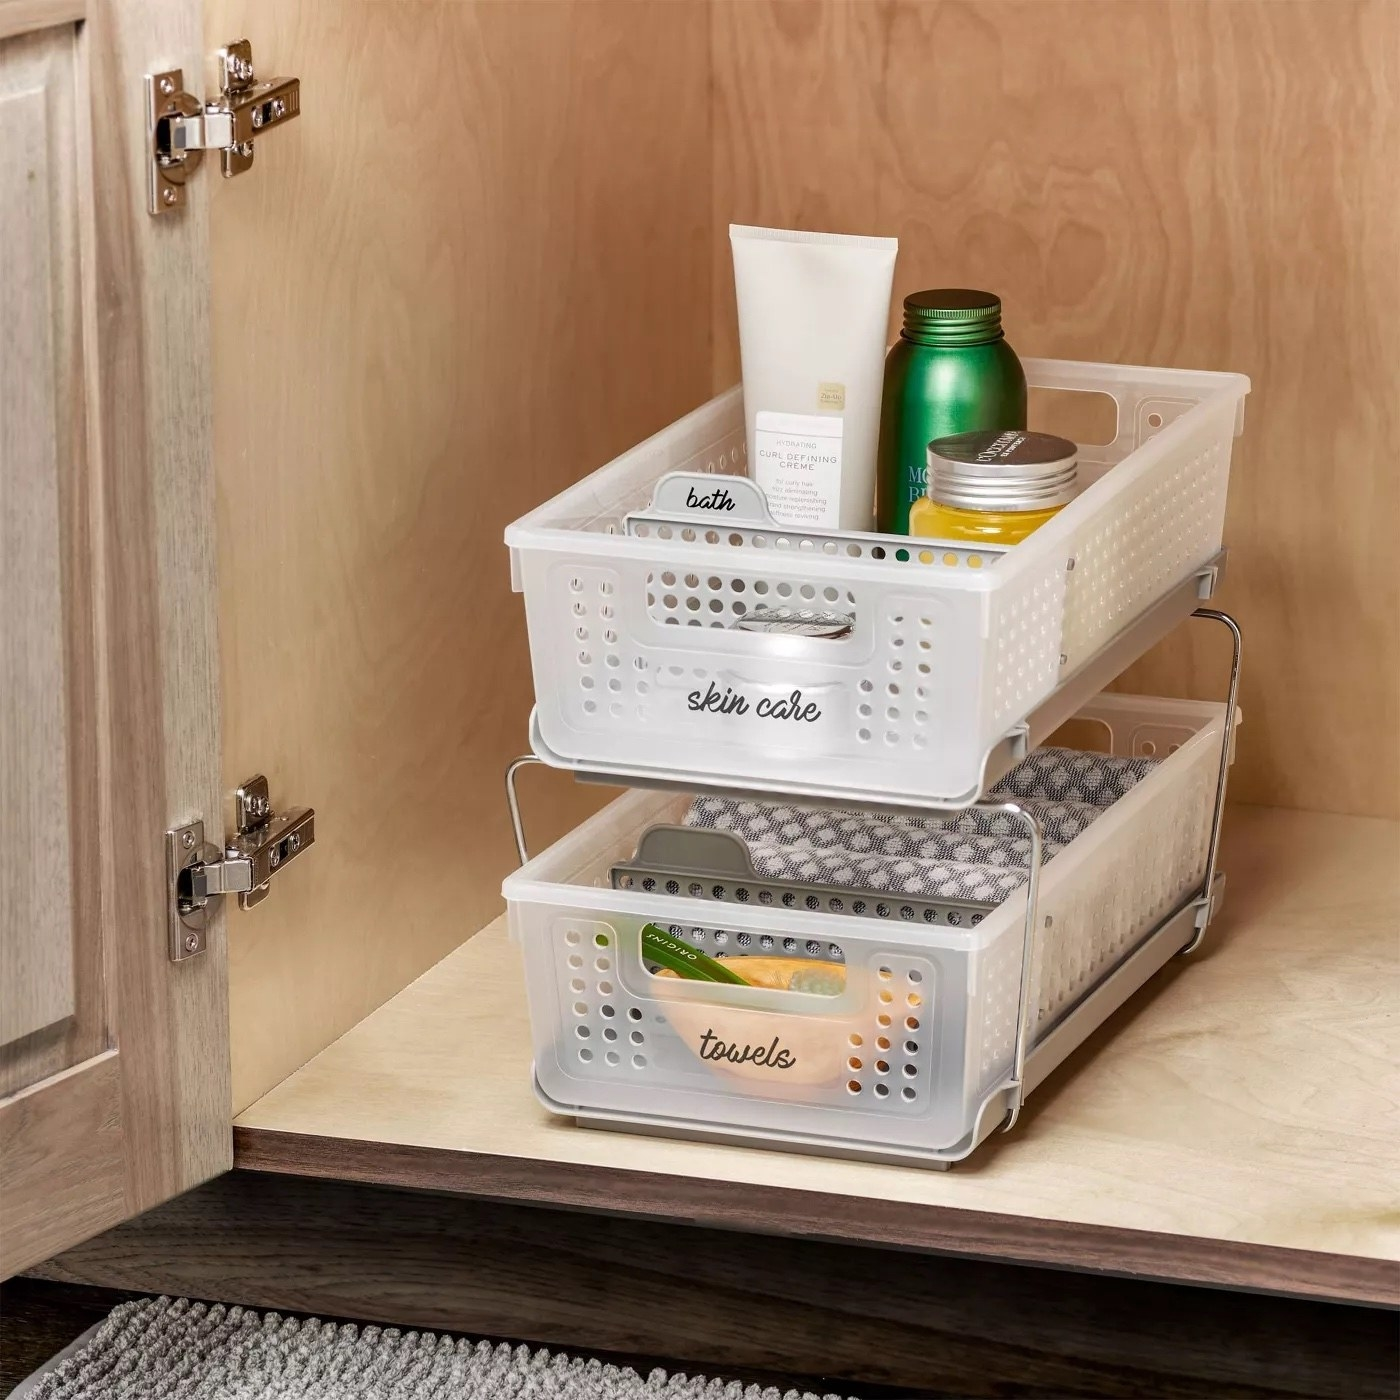 The two-tier organizer placed in a cabinet with assorted items inside